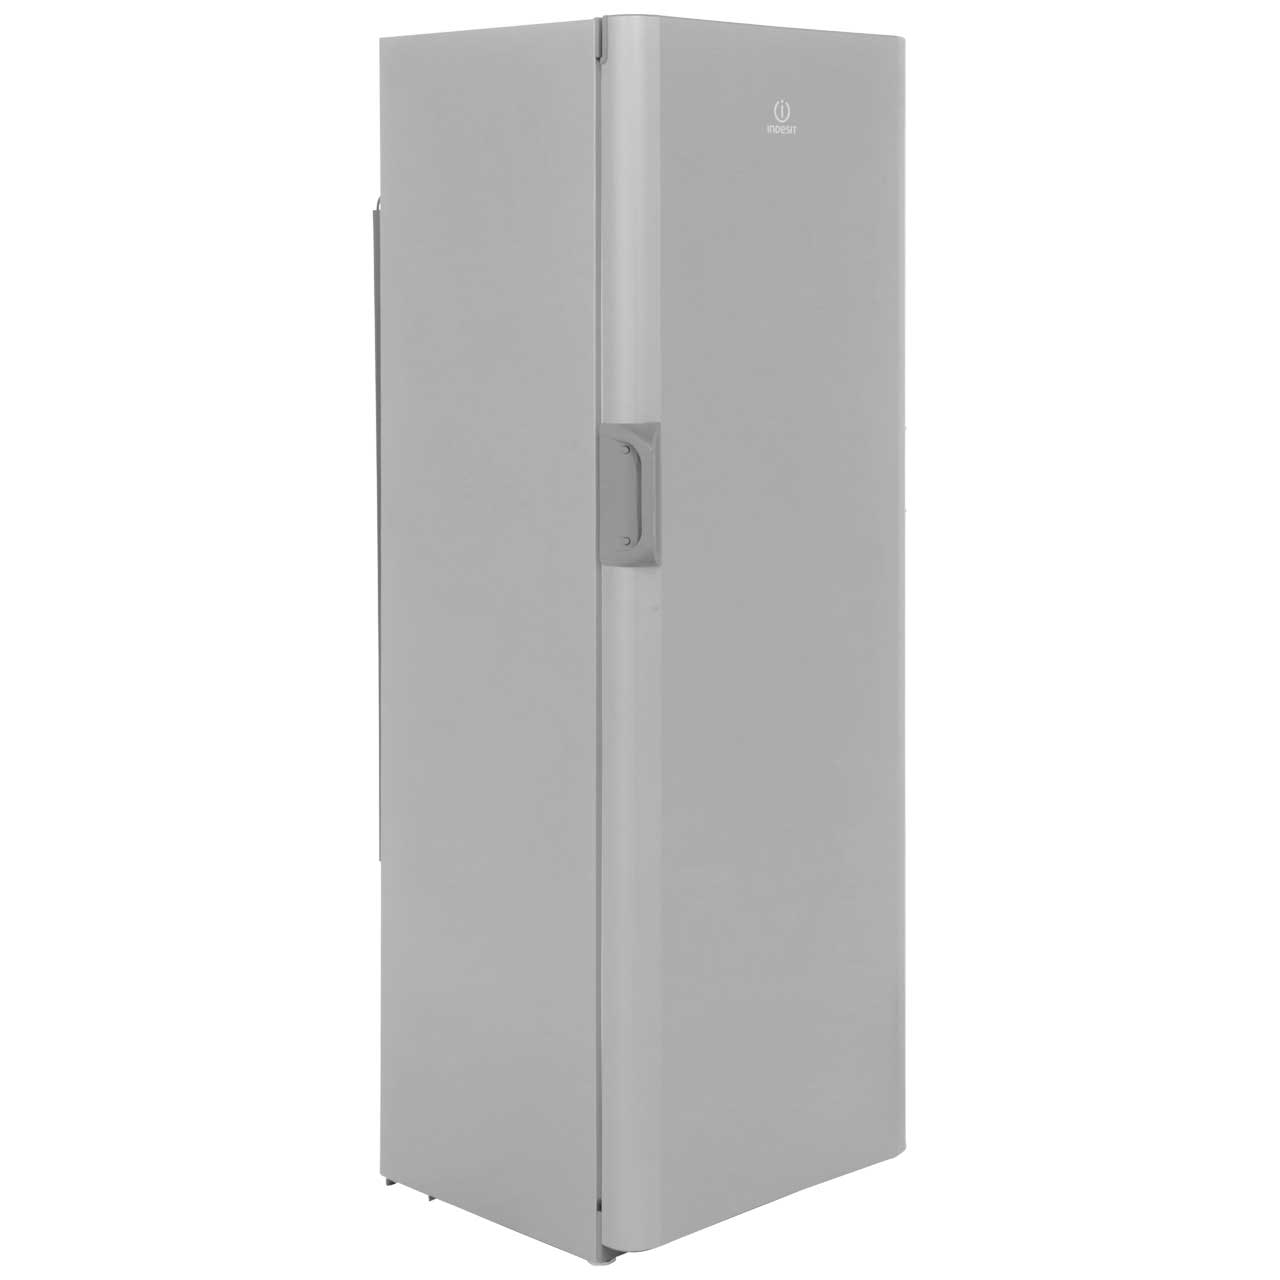 Indesit UIAA12S Free Standing Freezer in Silver